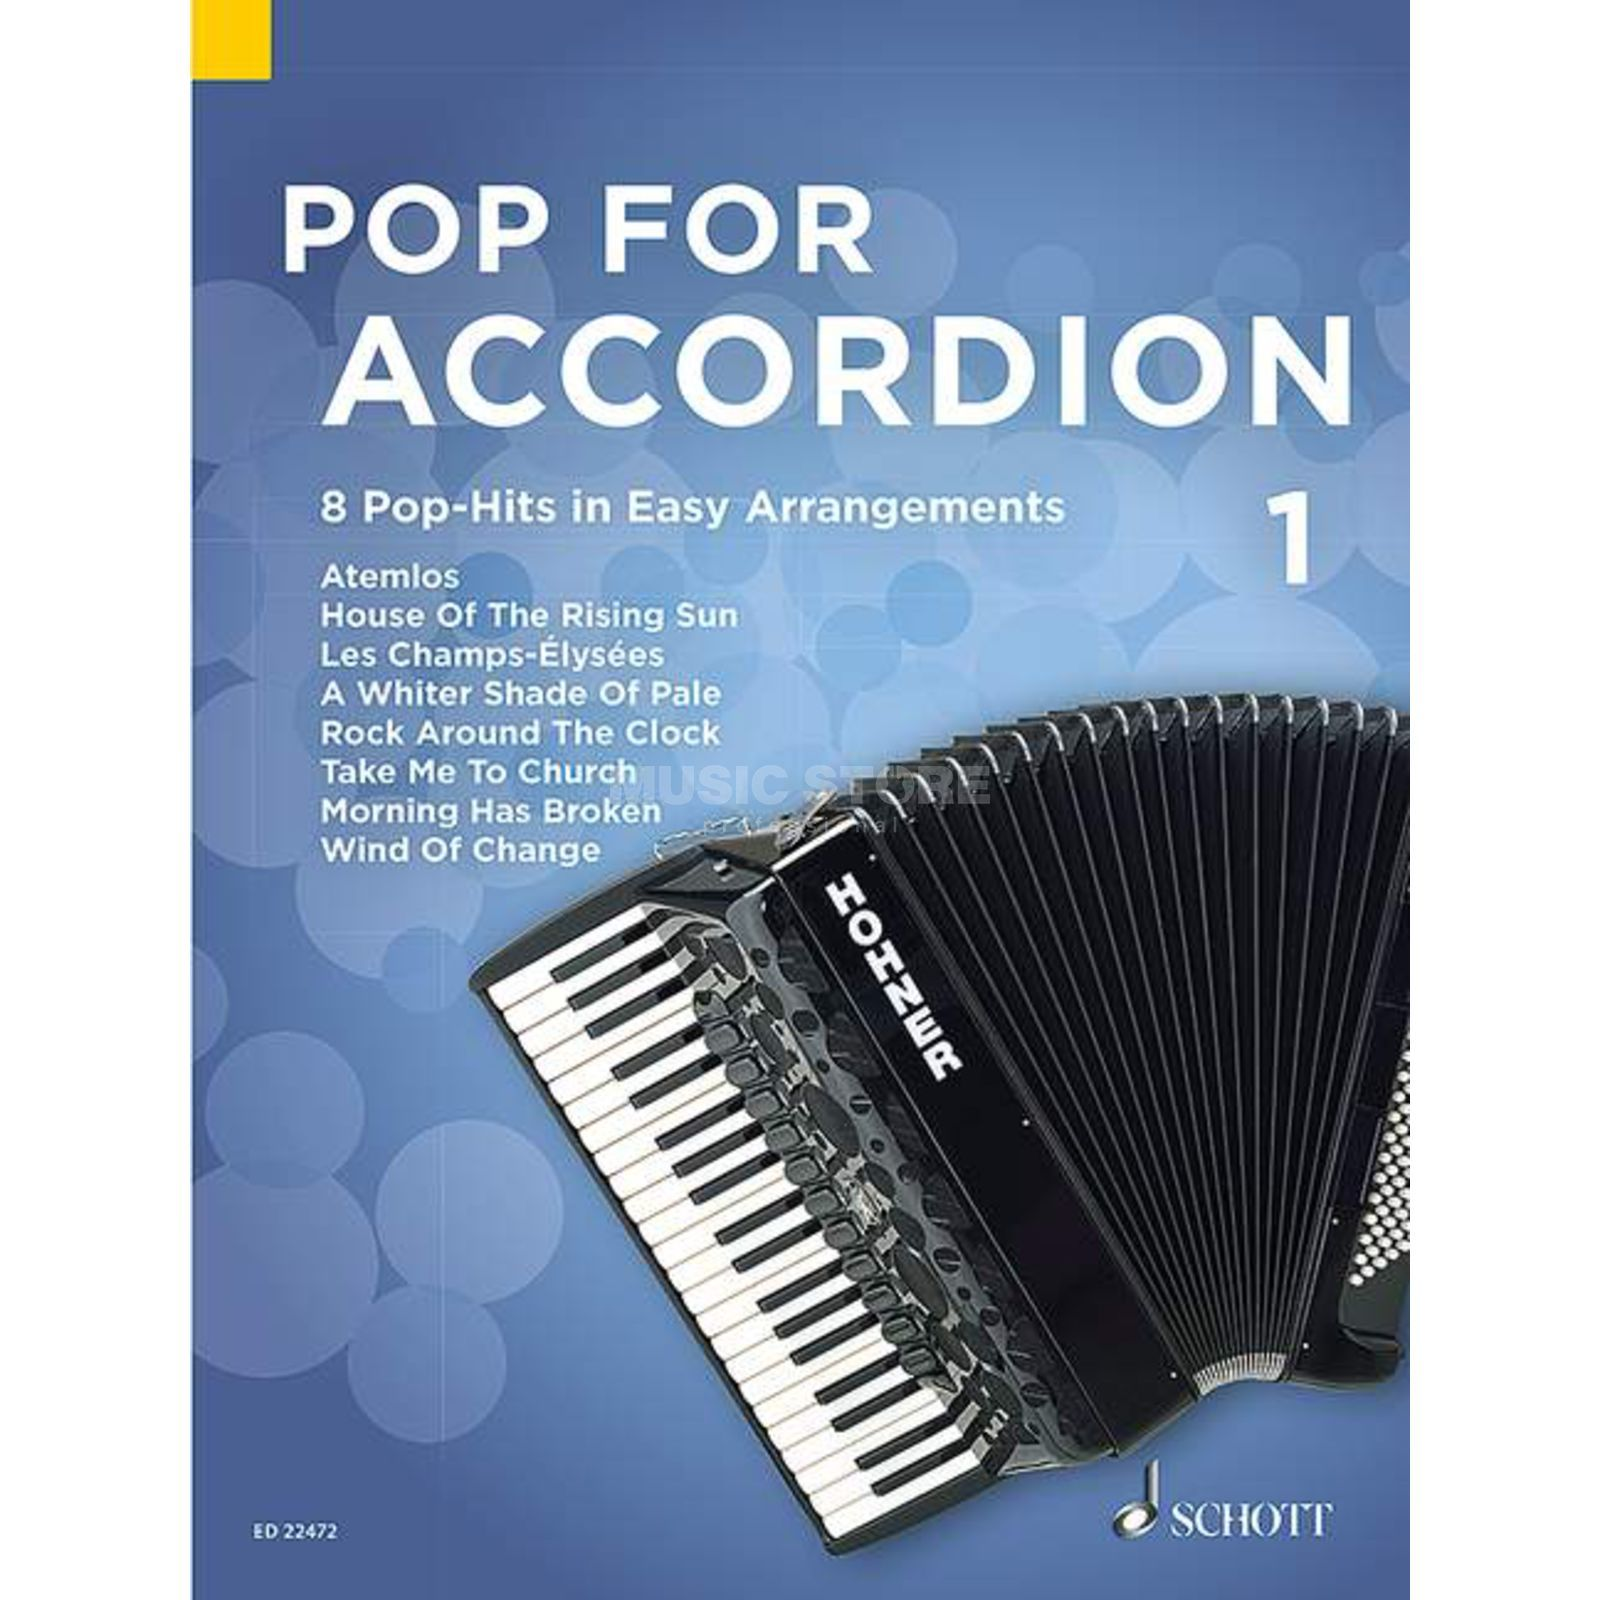 Schott Music Pop For Accordion 1 Zdjęcie produktu